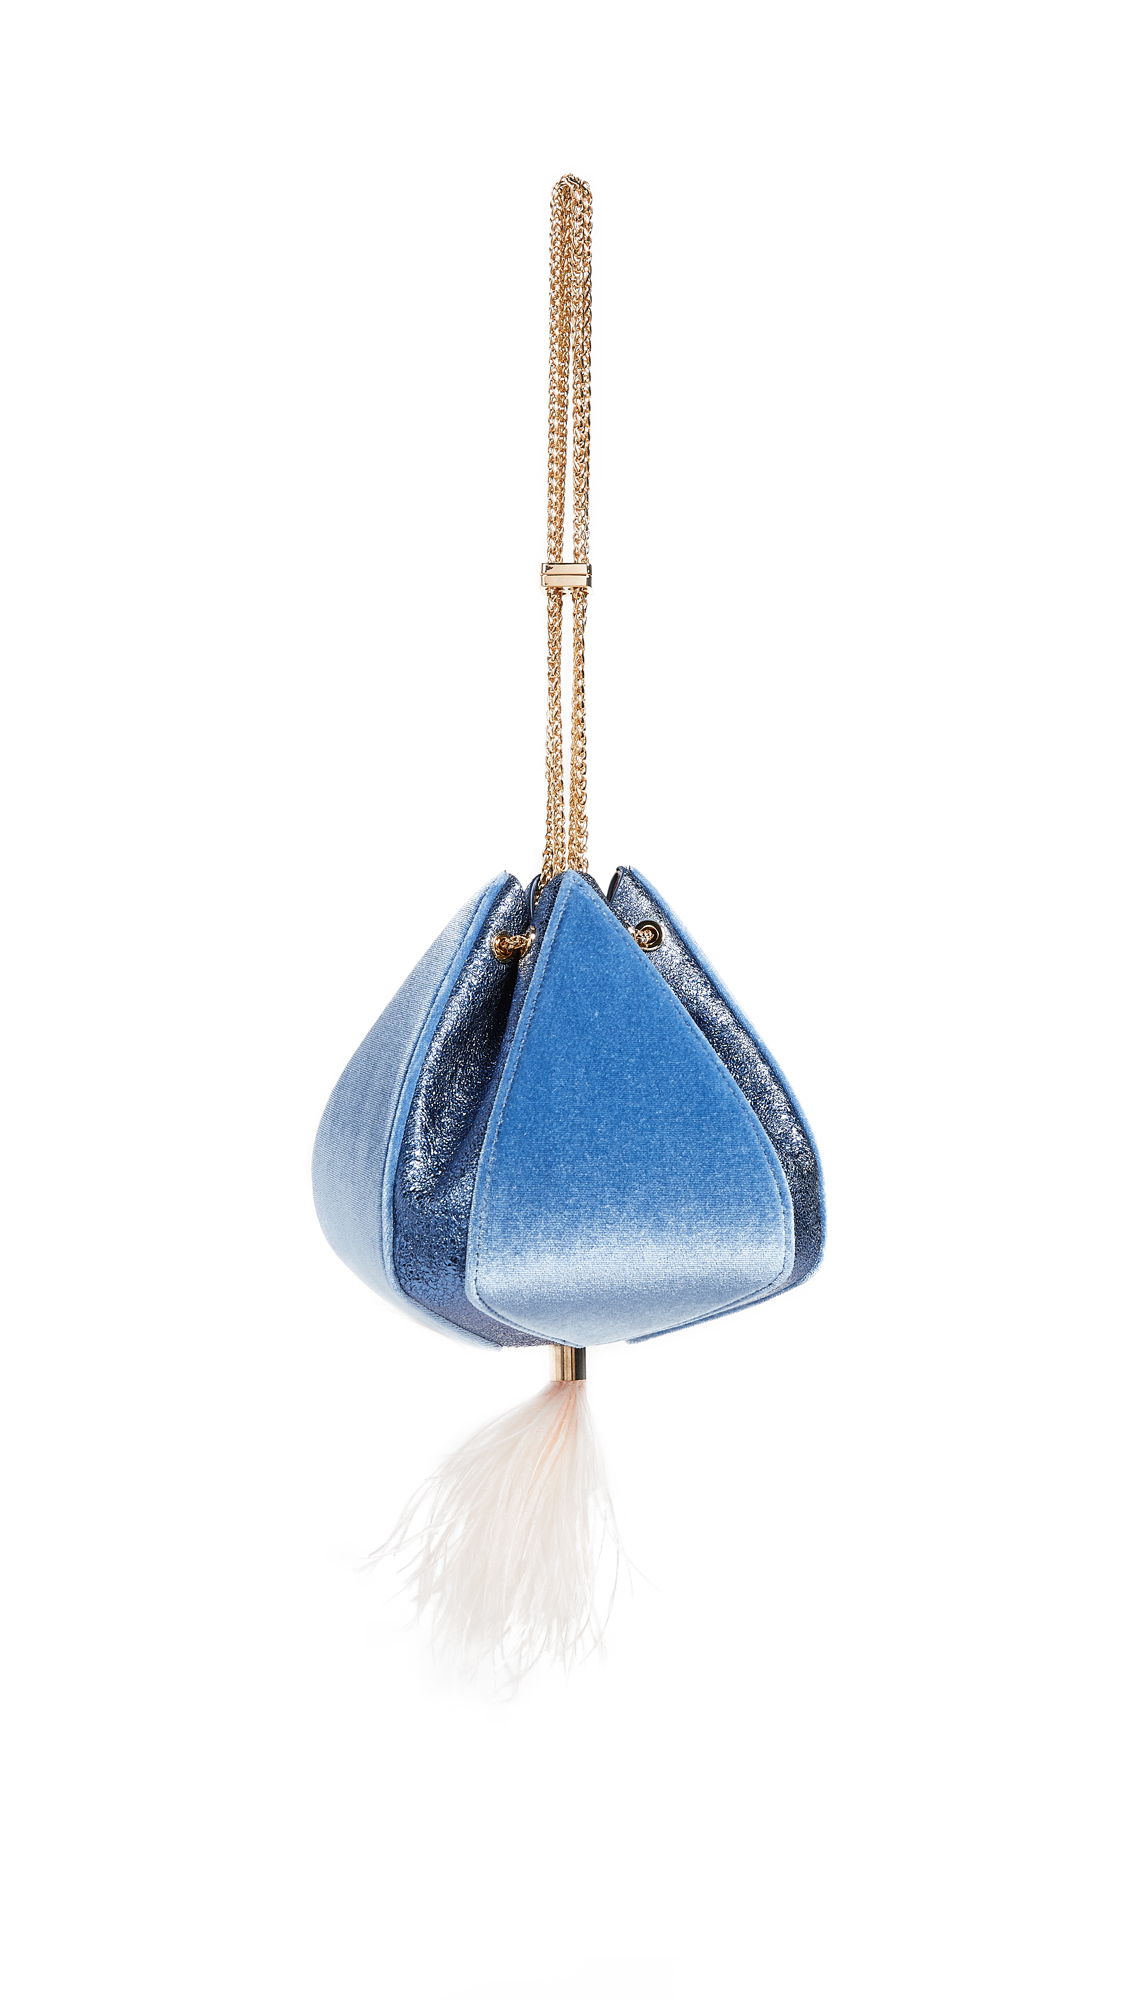 THE VOLON CINDY FEATHER BAG